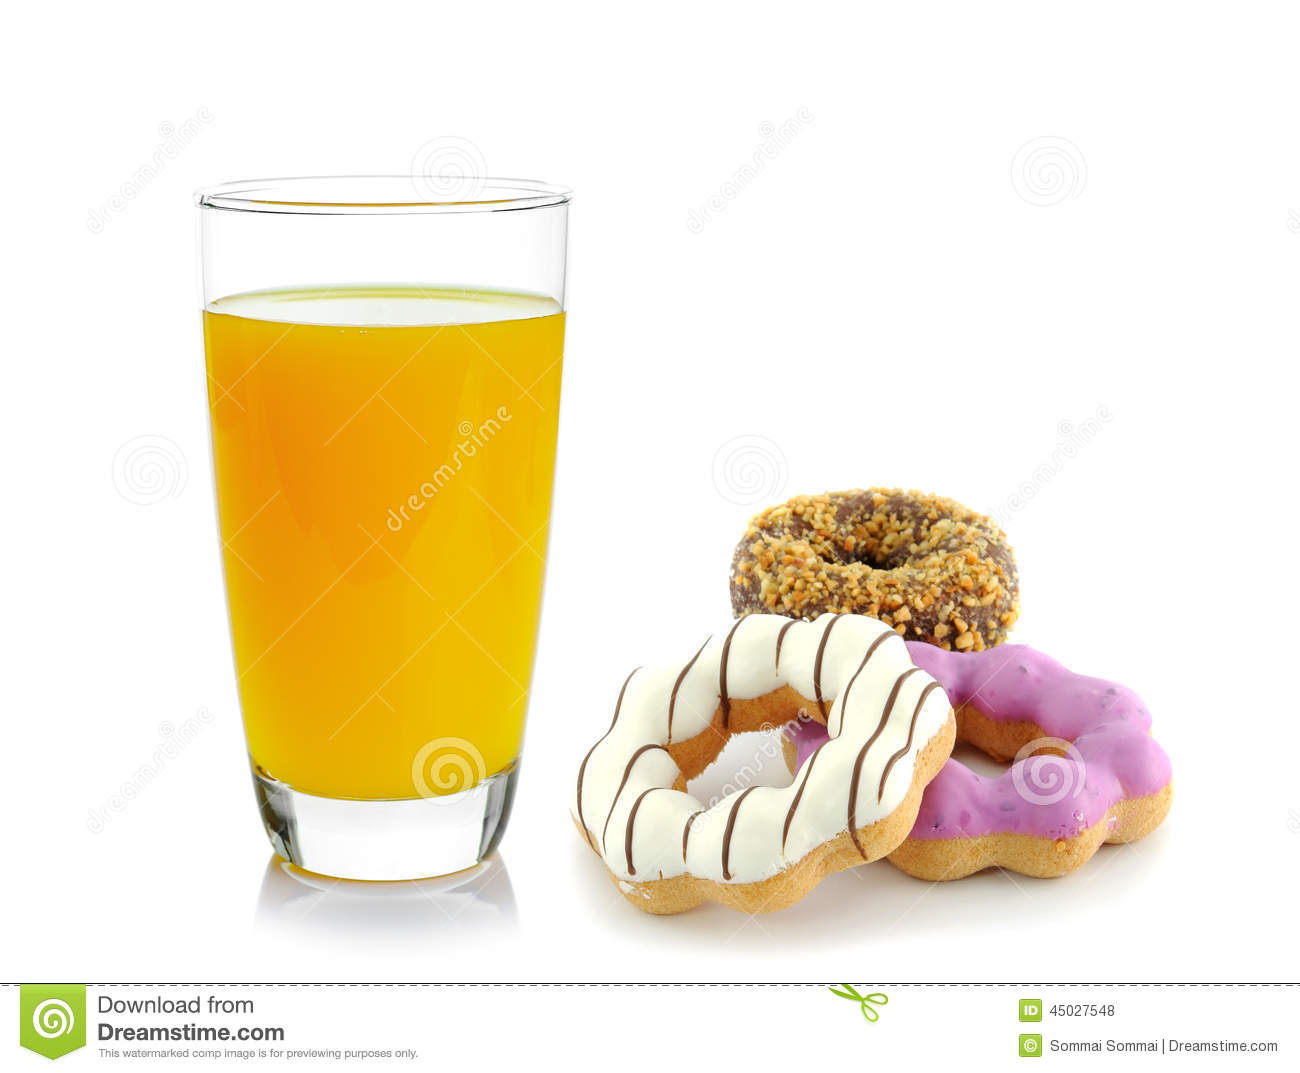 donut and orange juice on white background stock photo cute easter bunny clipart cute bunny clip art black and white